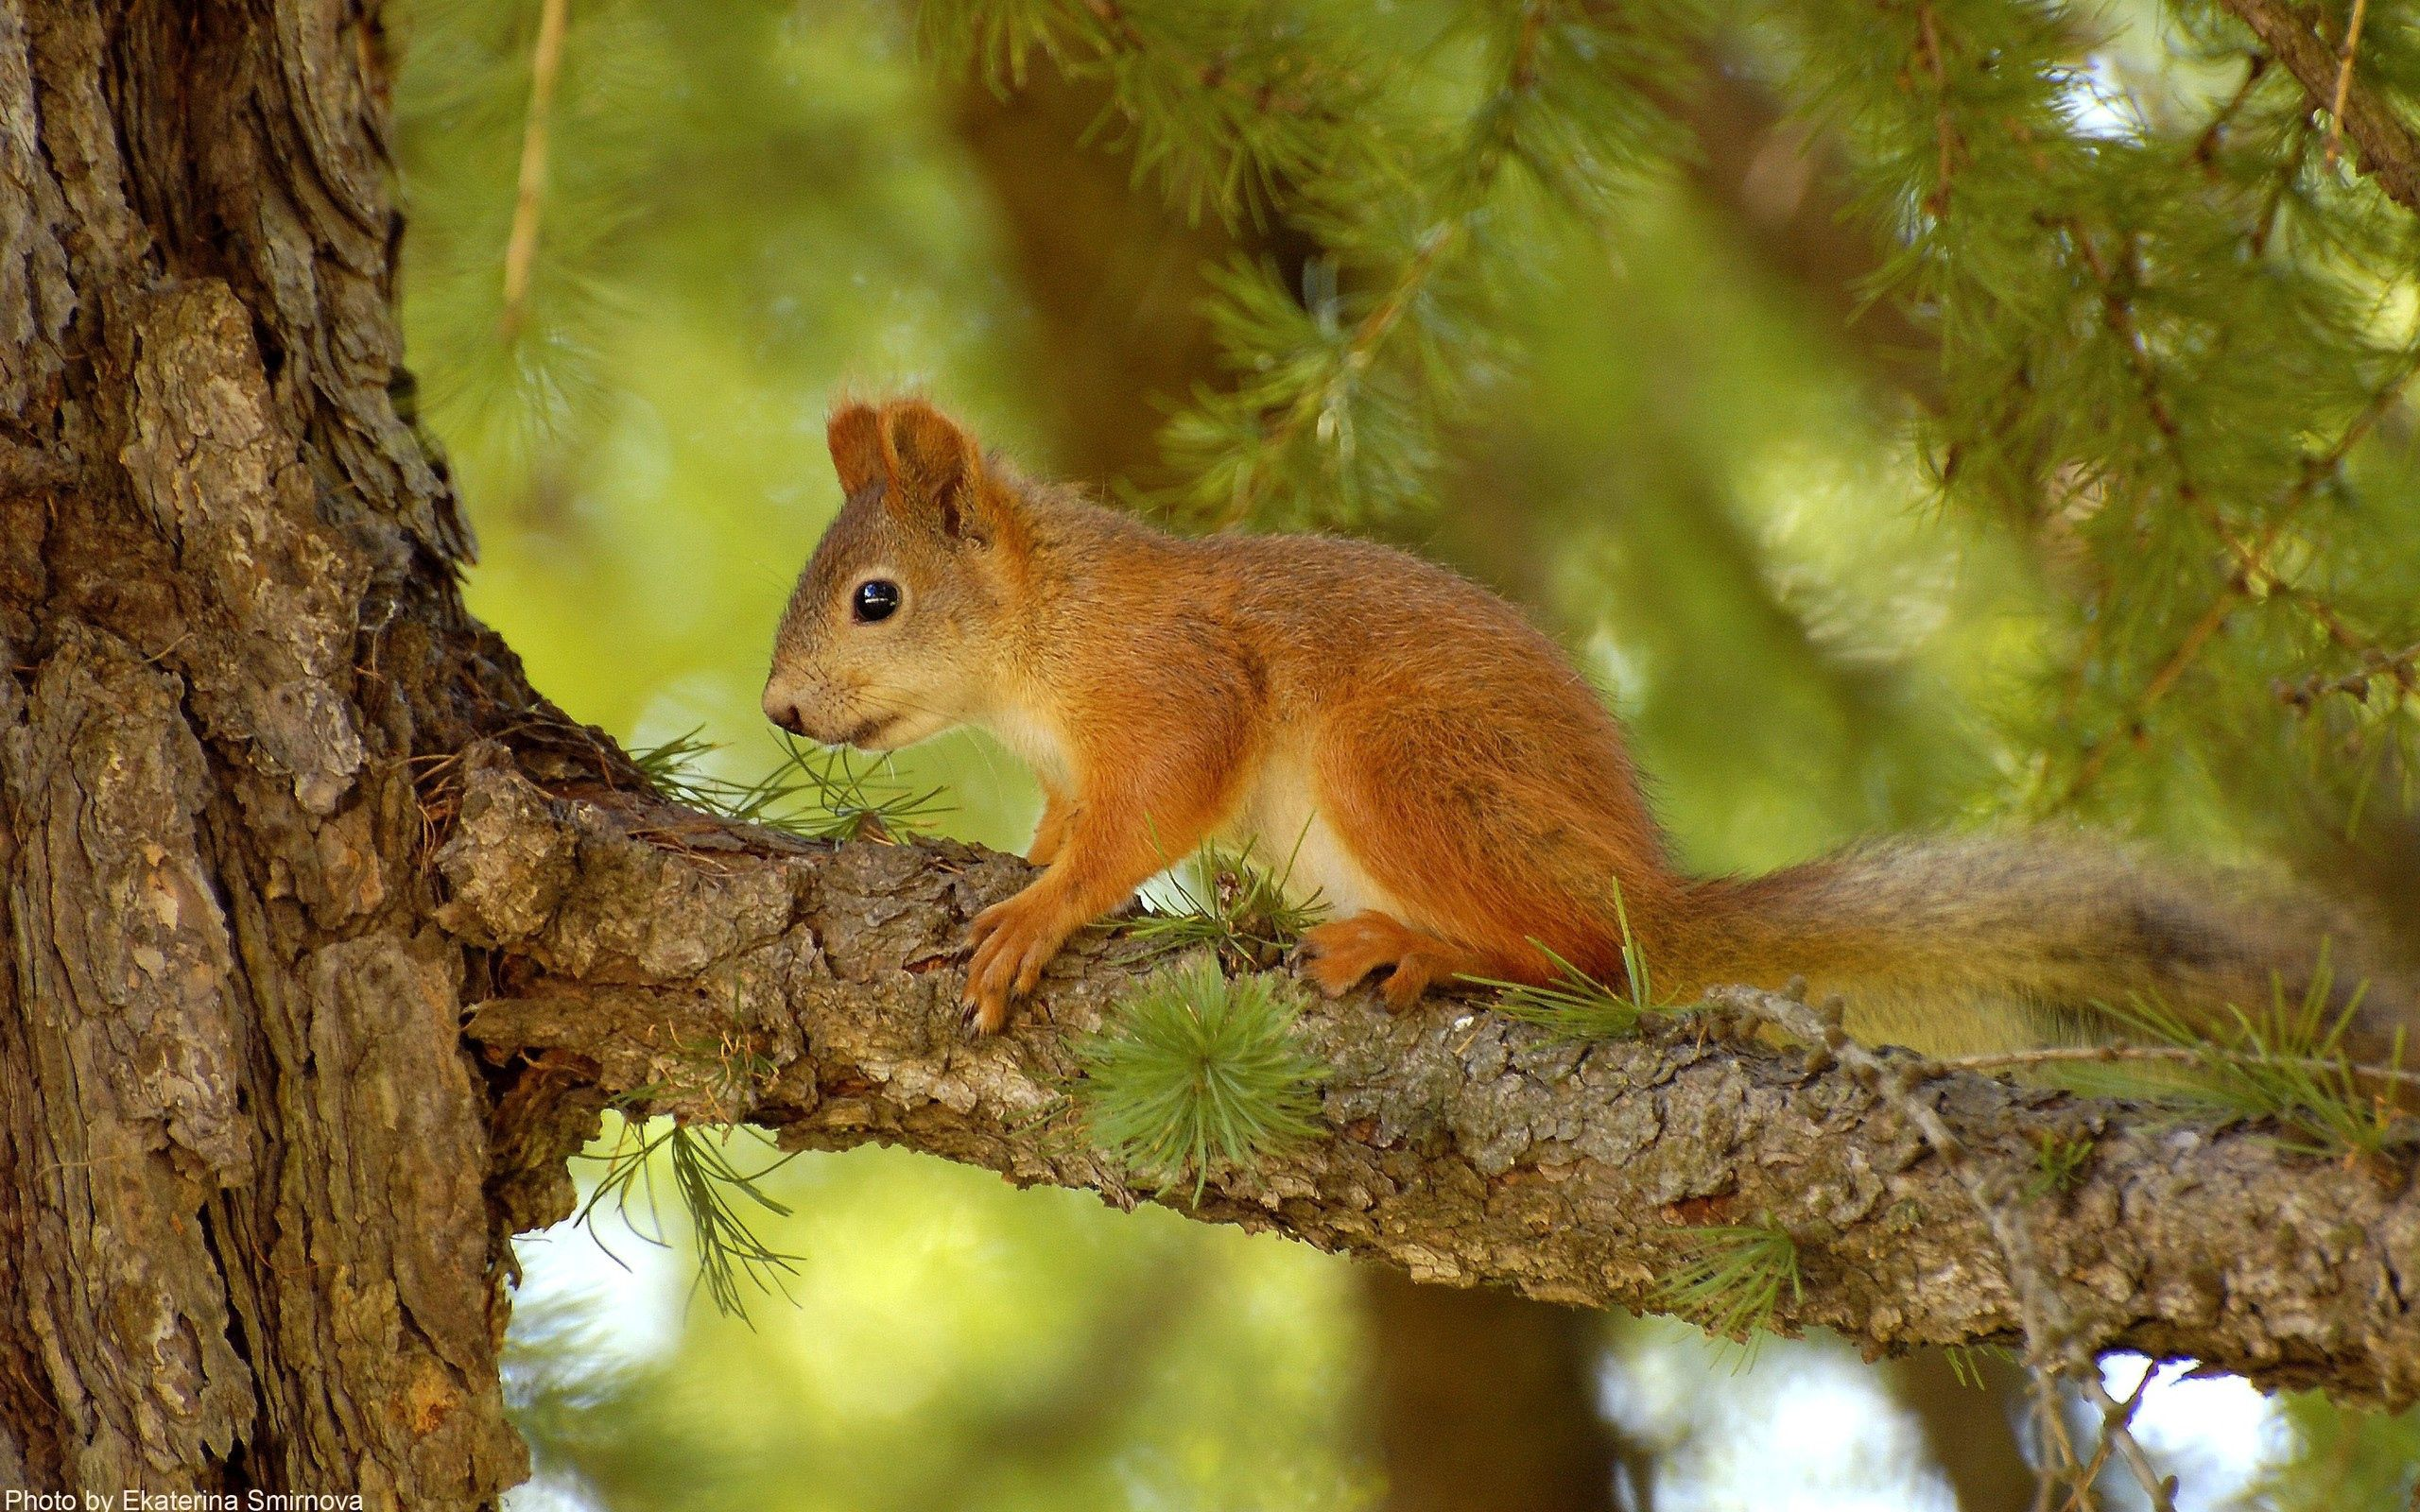 155756 download wallpaper Animals, Squirrel, Pine, Wood, Tree, Summer, Hunting, Hunt screensavers and pictures for free